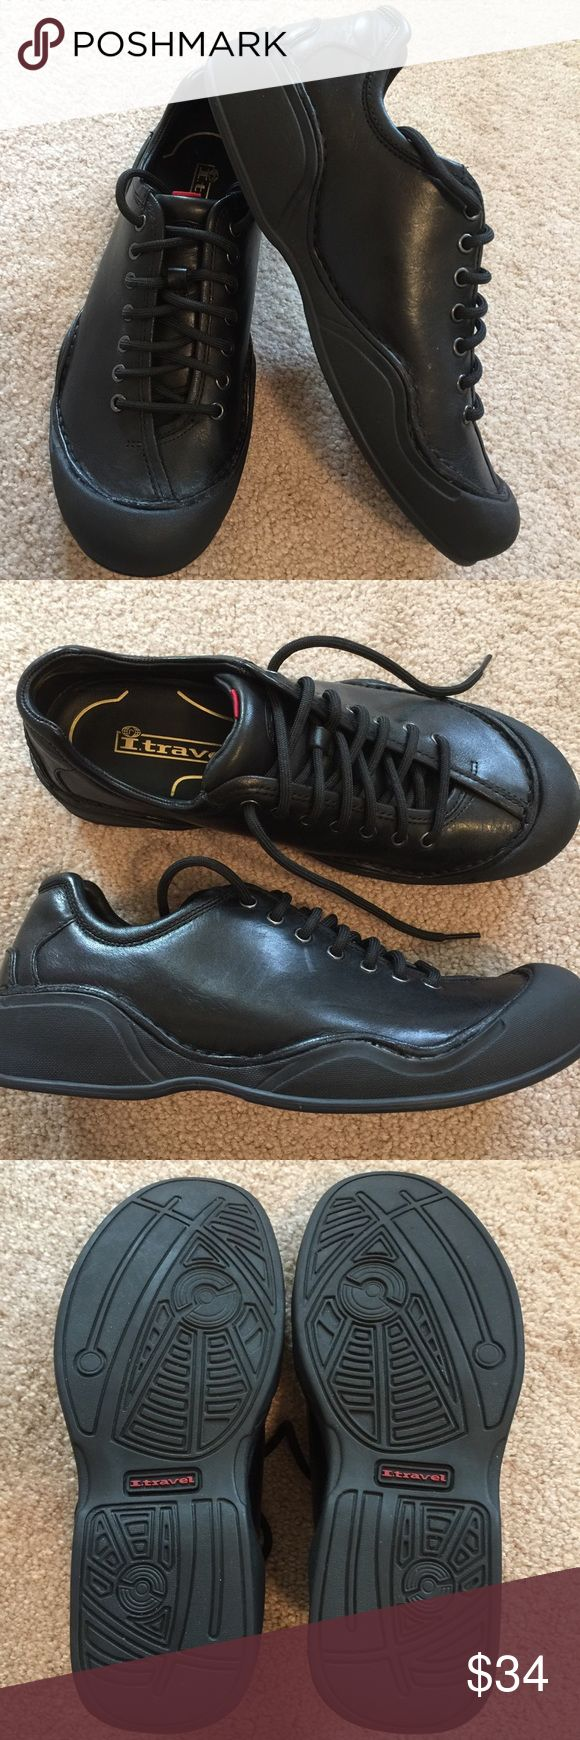 Men's Rockport ITravel Leather Walking Shoe NWOT Men's ITravel black leather walking shoe. Perfect condition. These well-made Rockport ITravel walking sneakers have a leather upper and a cushioned footbed for added comfort. They have a lace up closure for a secure fit. EVA midsole for added lightweight cushioning and a rubber outsole.  Travel the road less taken in these comfortable shoes! Please refer to photos. Thanks for visiting my closet. Happy poshing! Rockport Shoes Sneakers